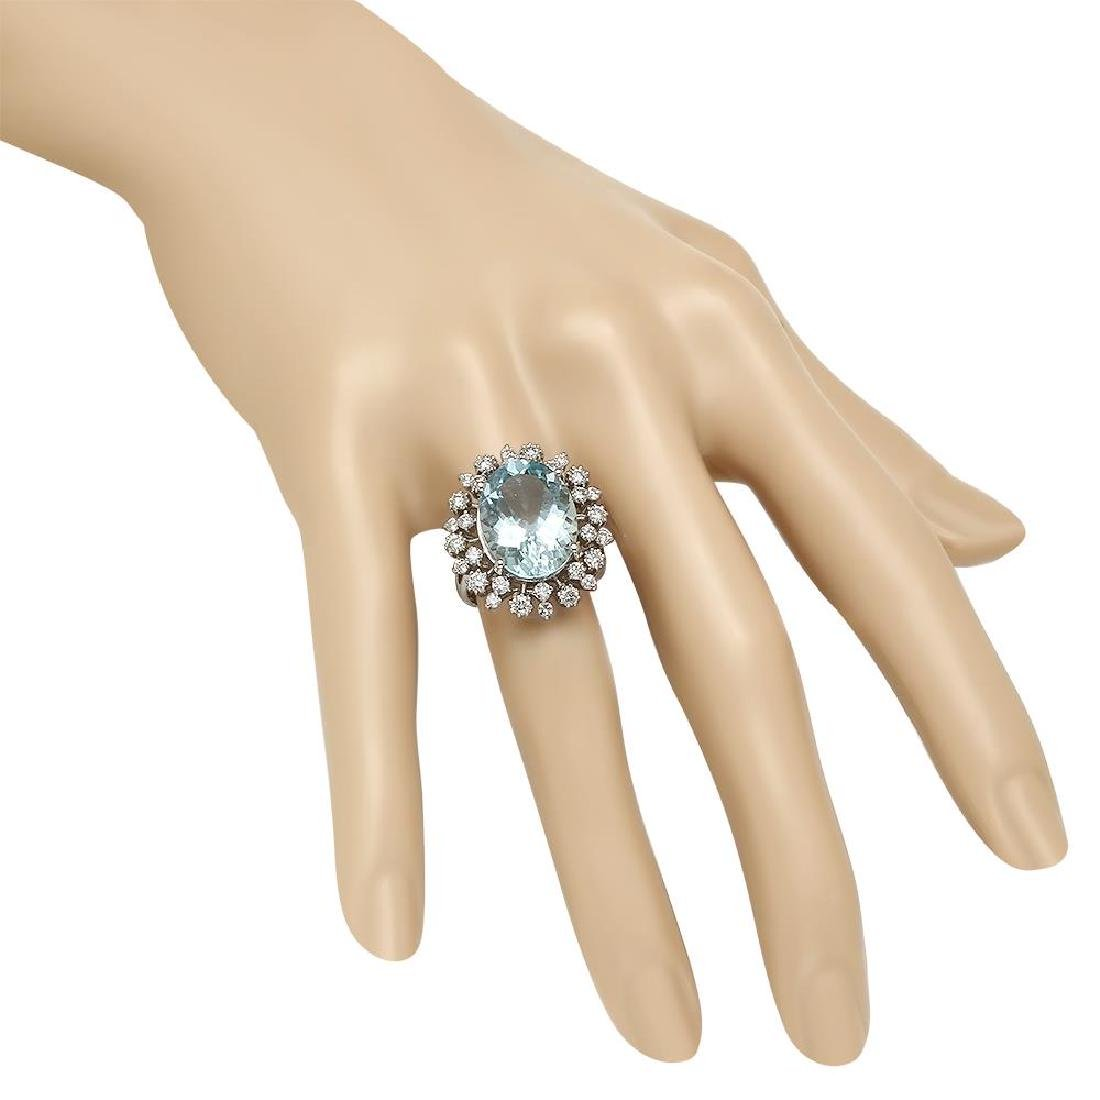 14K Gold 8.00ct Aquamarine 1.23ct Diamond Ring - 3